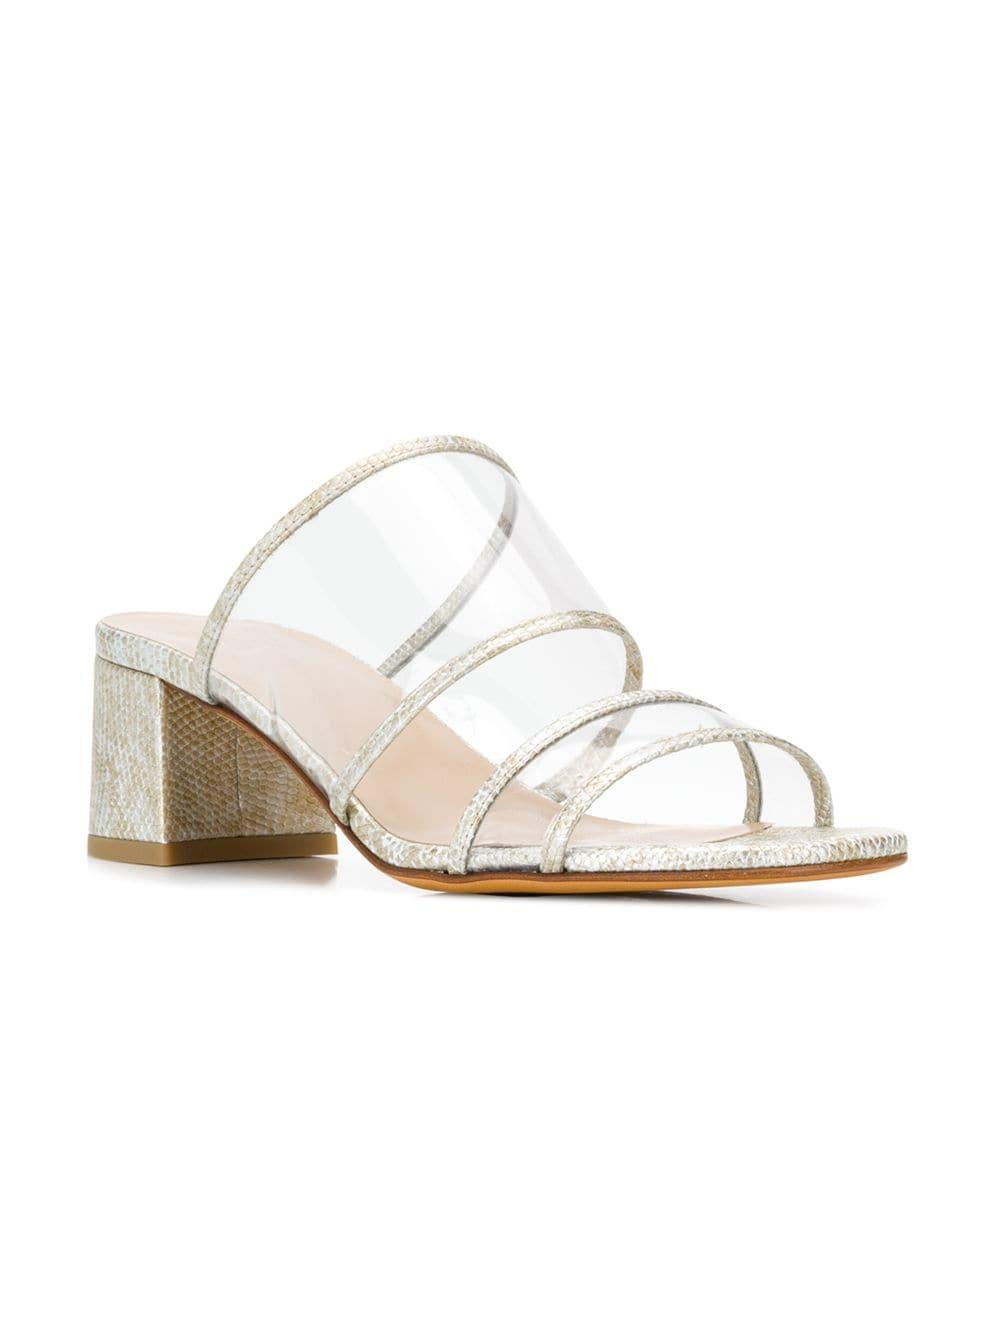 846d34110 Maryam Nassir Zadeh Martina Mules in White - Lyst